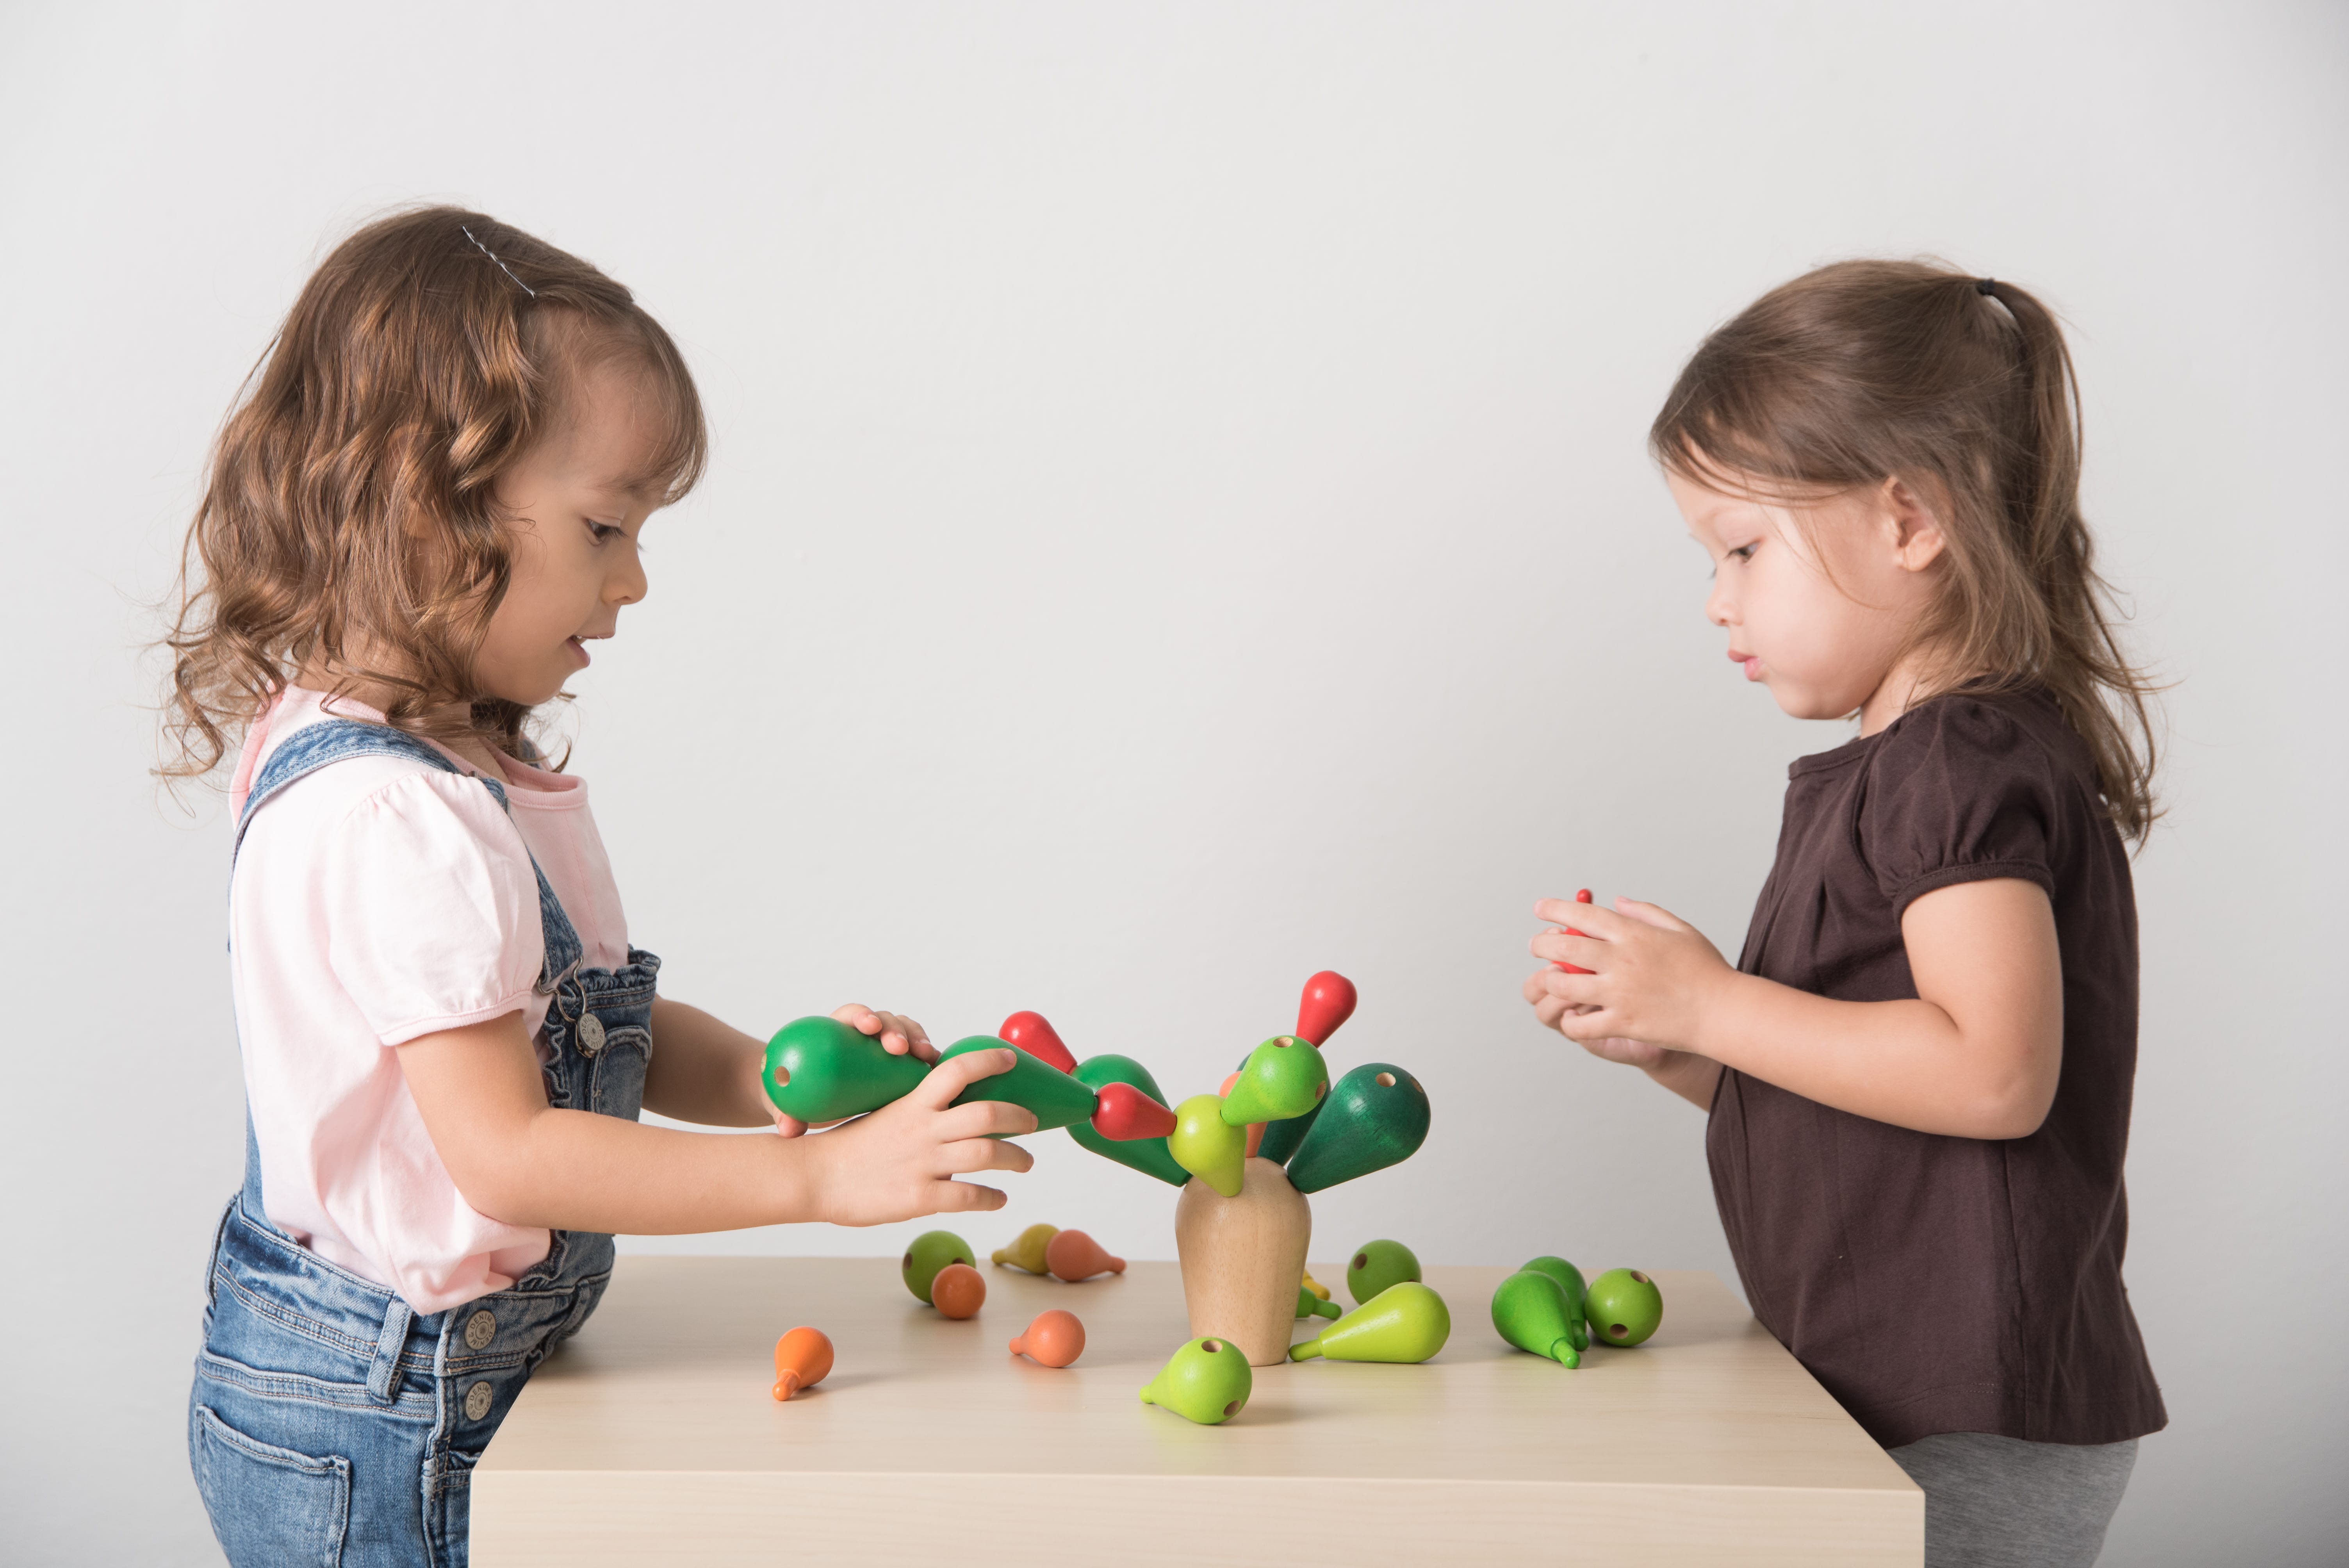 4101_PlanToys_BALANCING_CACTUS_Game_and_Puzzles_Concentration_Logical_Coordination_Problem_Solving_Language_and_Communications_Mathematical_3yrs_Wooden_toys_Education_toys_Safety_Toys_Non-toxic_5.jpg